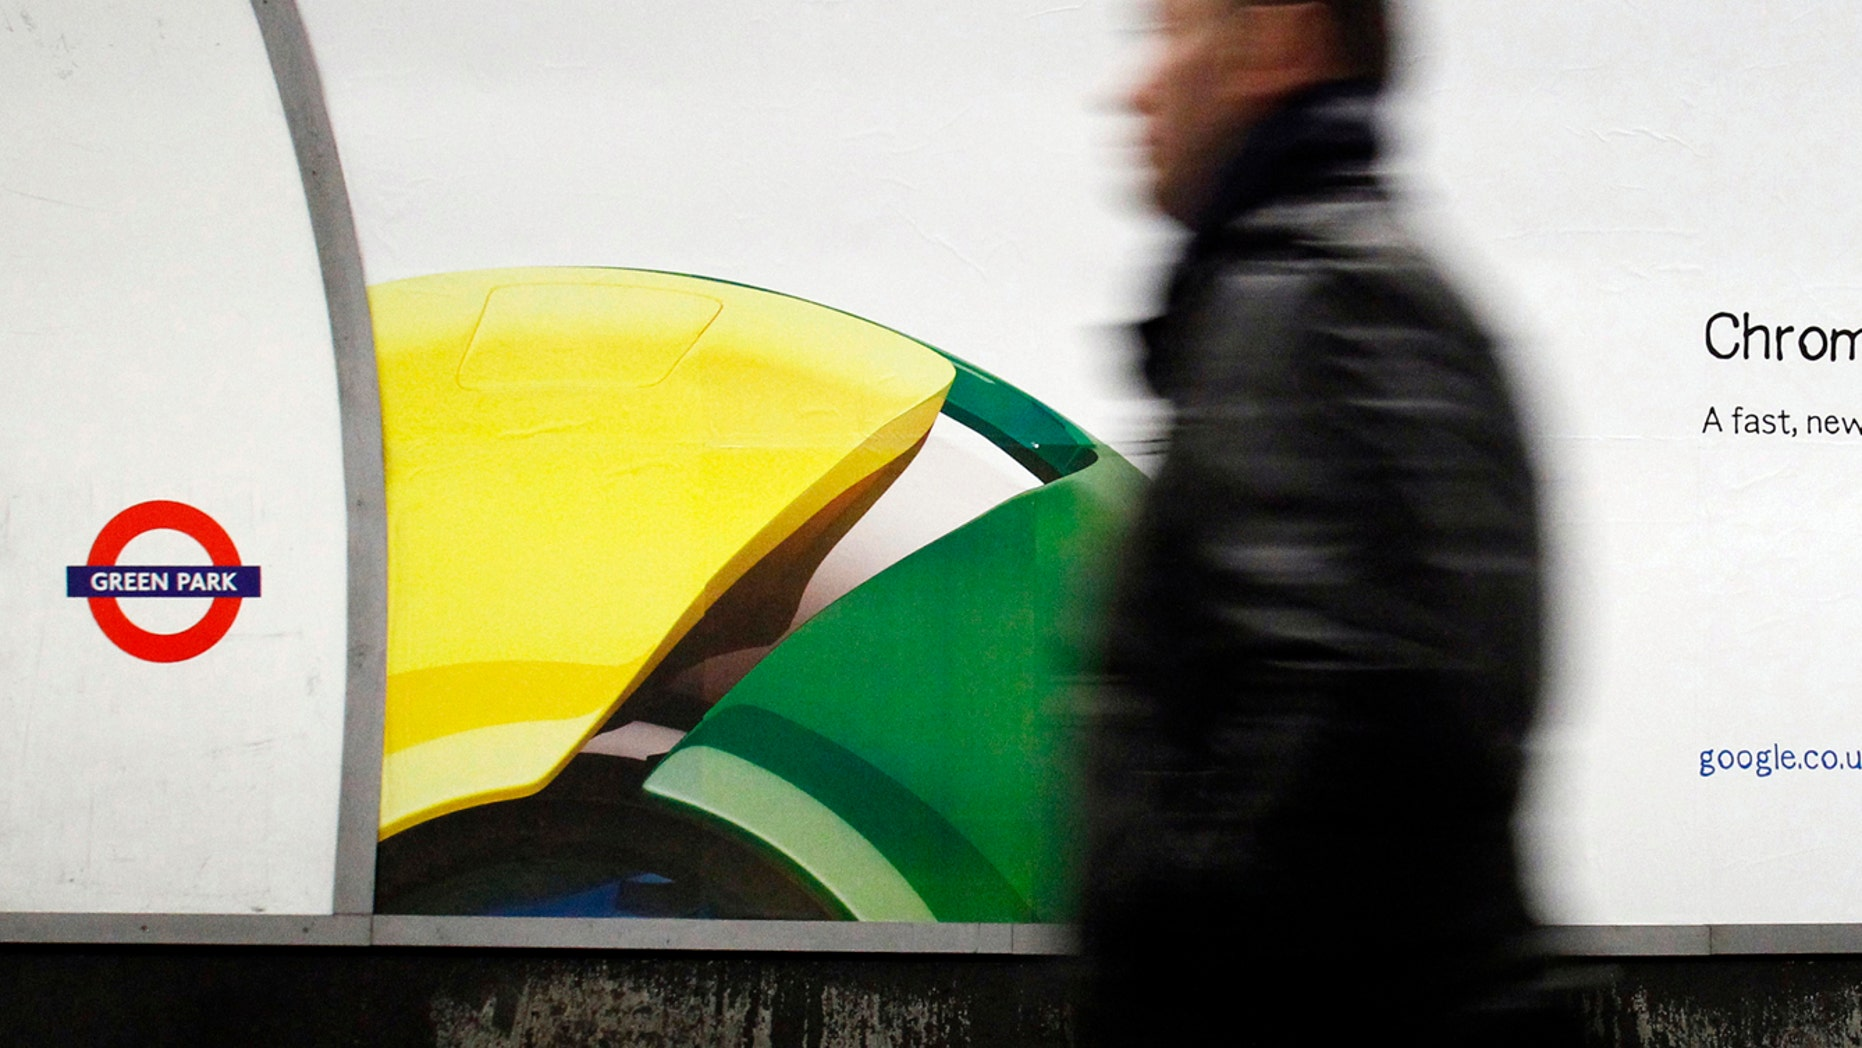 File photo - A man walks past a poster for Google's Chrome browser in an underground station in central London Jan. 25, 2010. (REUTERS/Luke MacGregor)